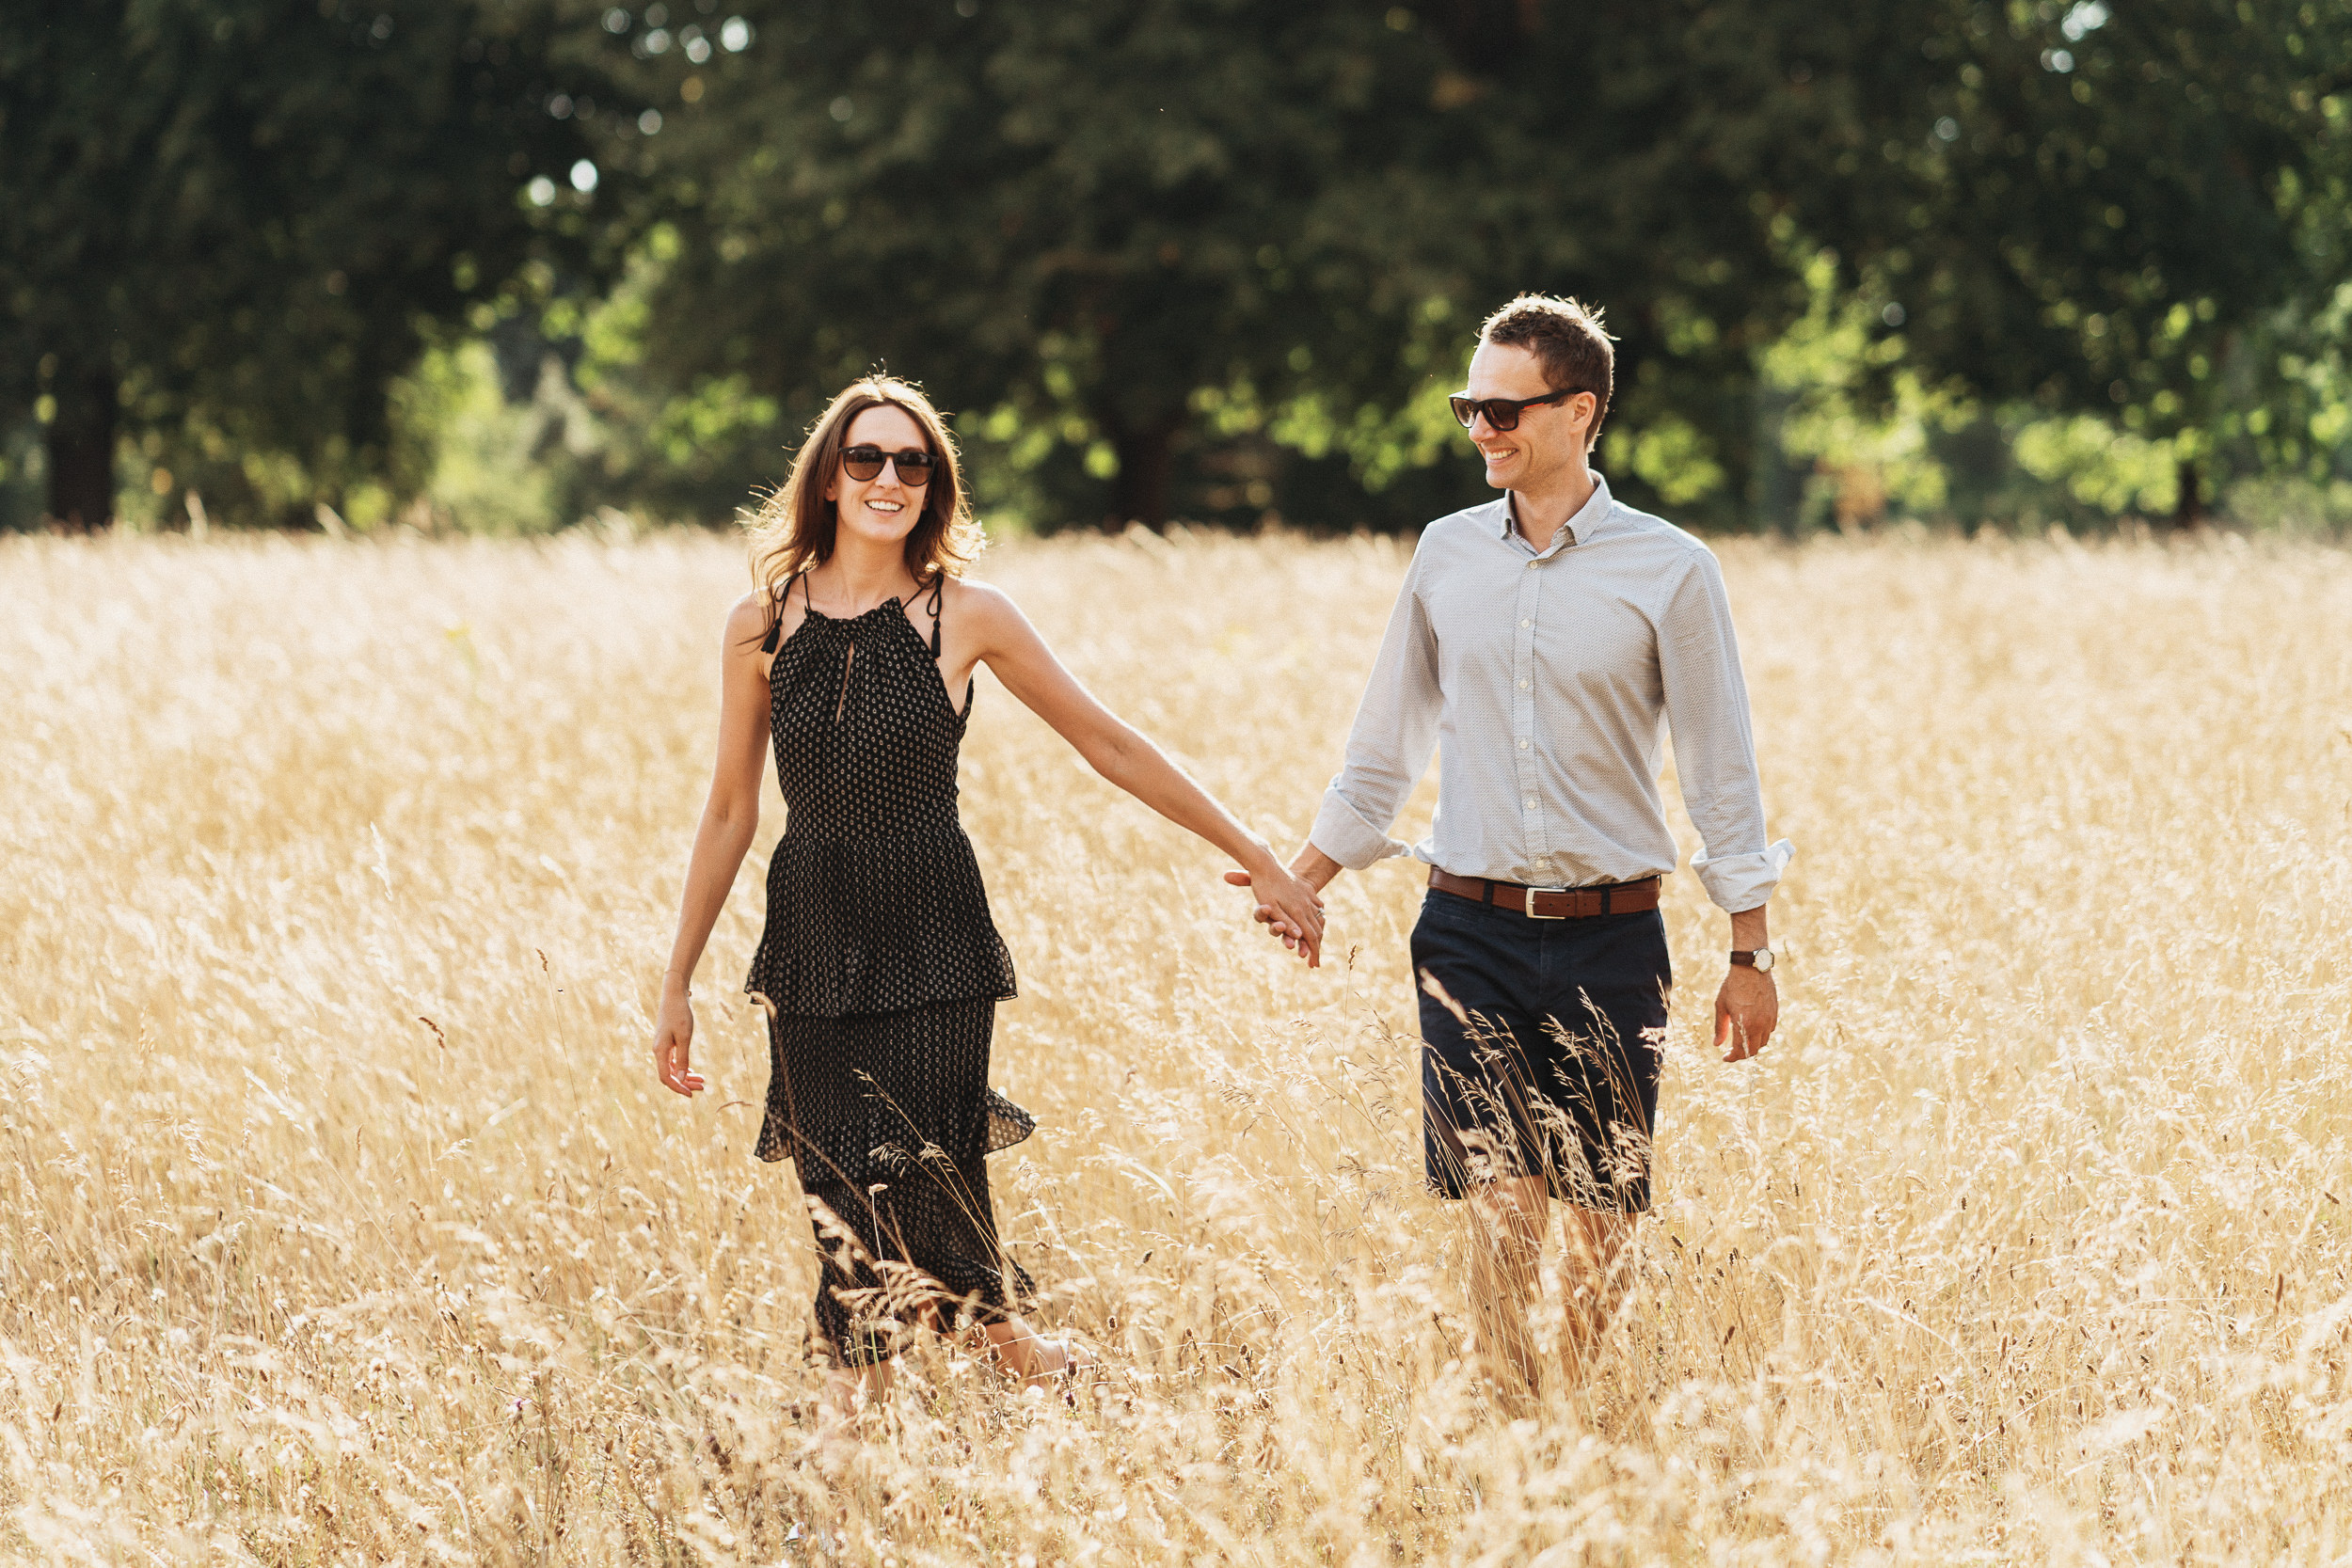 Engagement Shoot on Clifton Downs - Natural light portrait